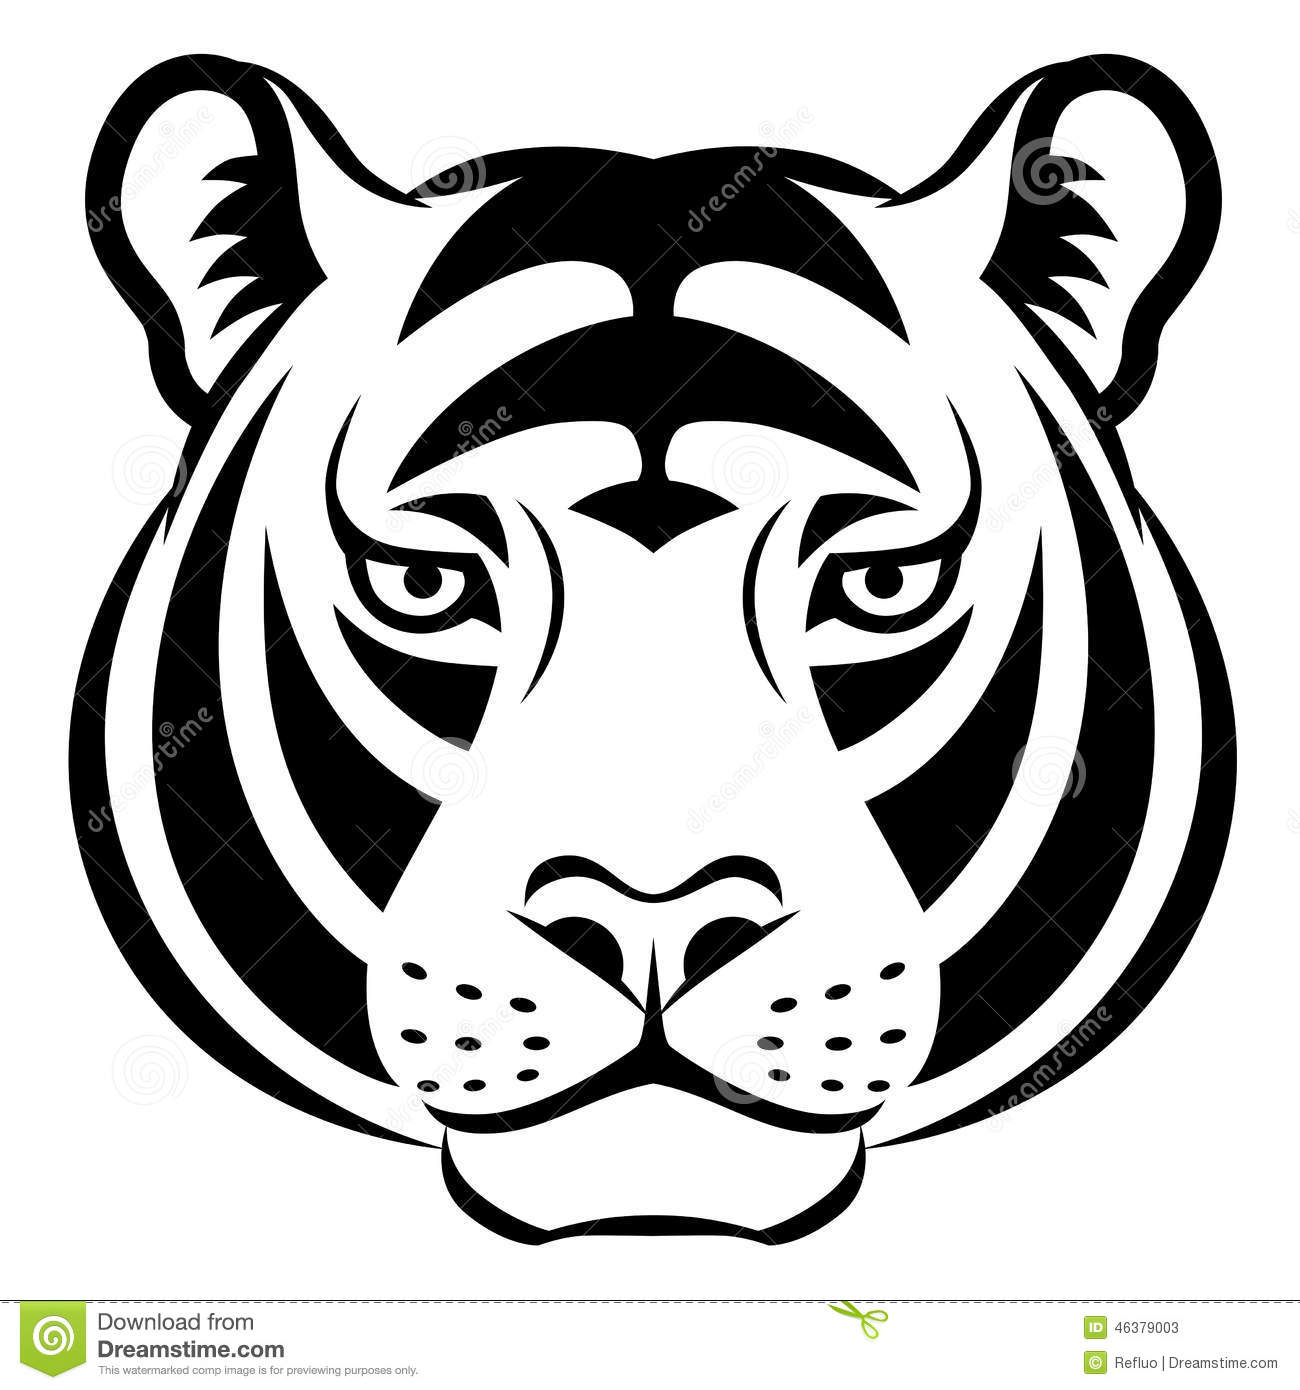 tiger face symbol stock vector image 46379003